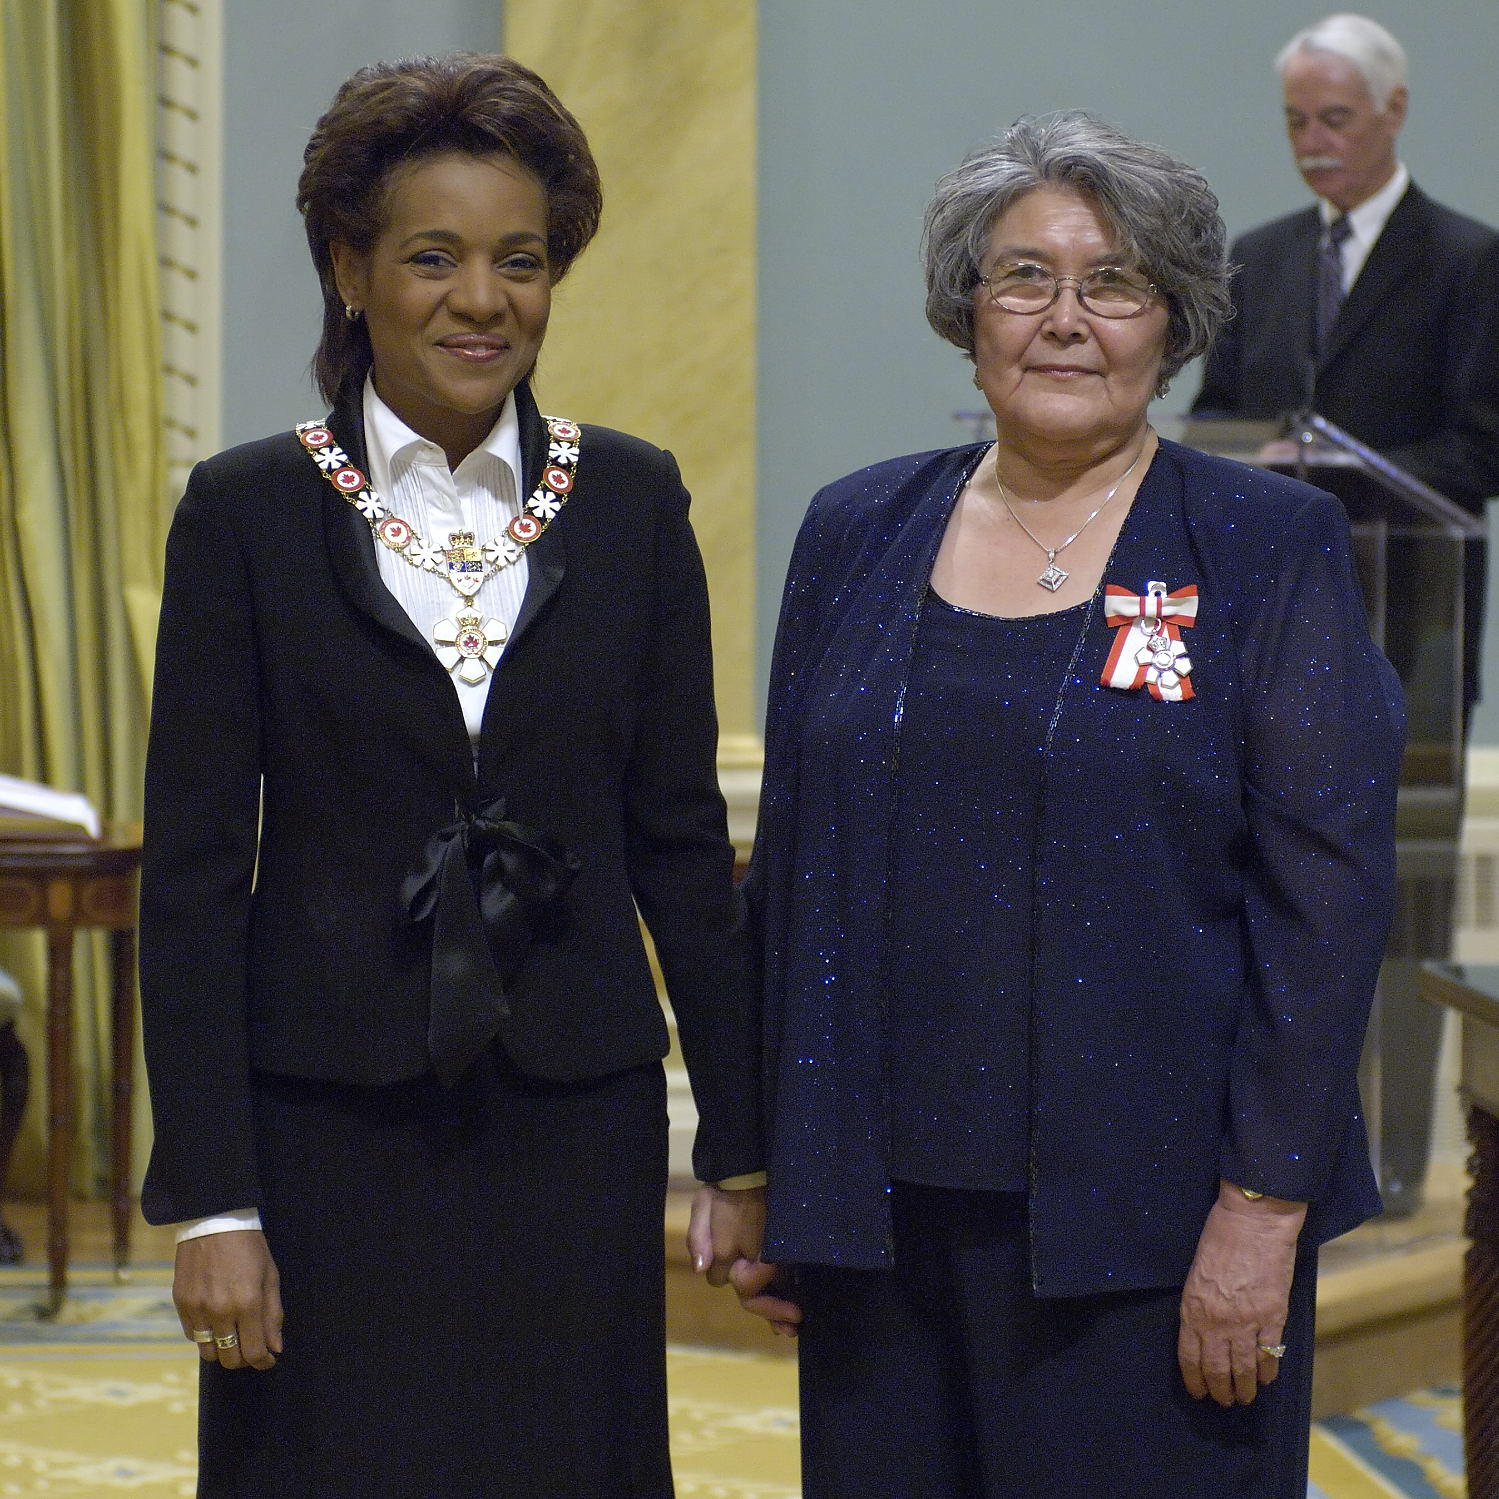 Bertha Allen (right) and the Governor General, Michaëlle Jean.